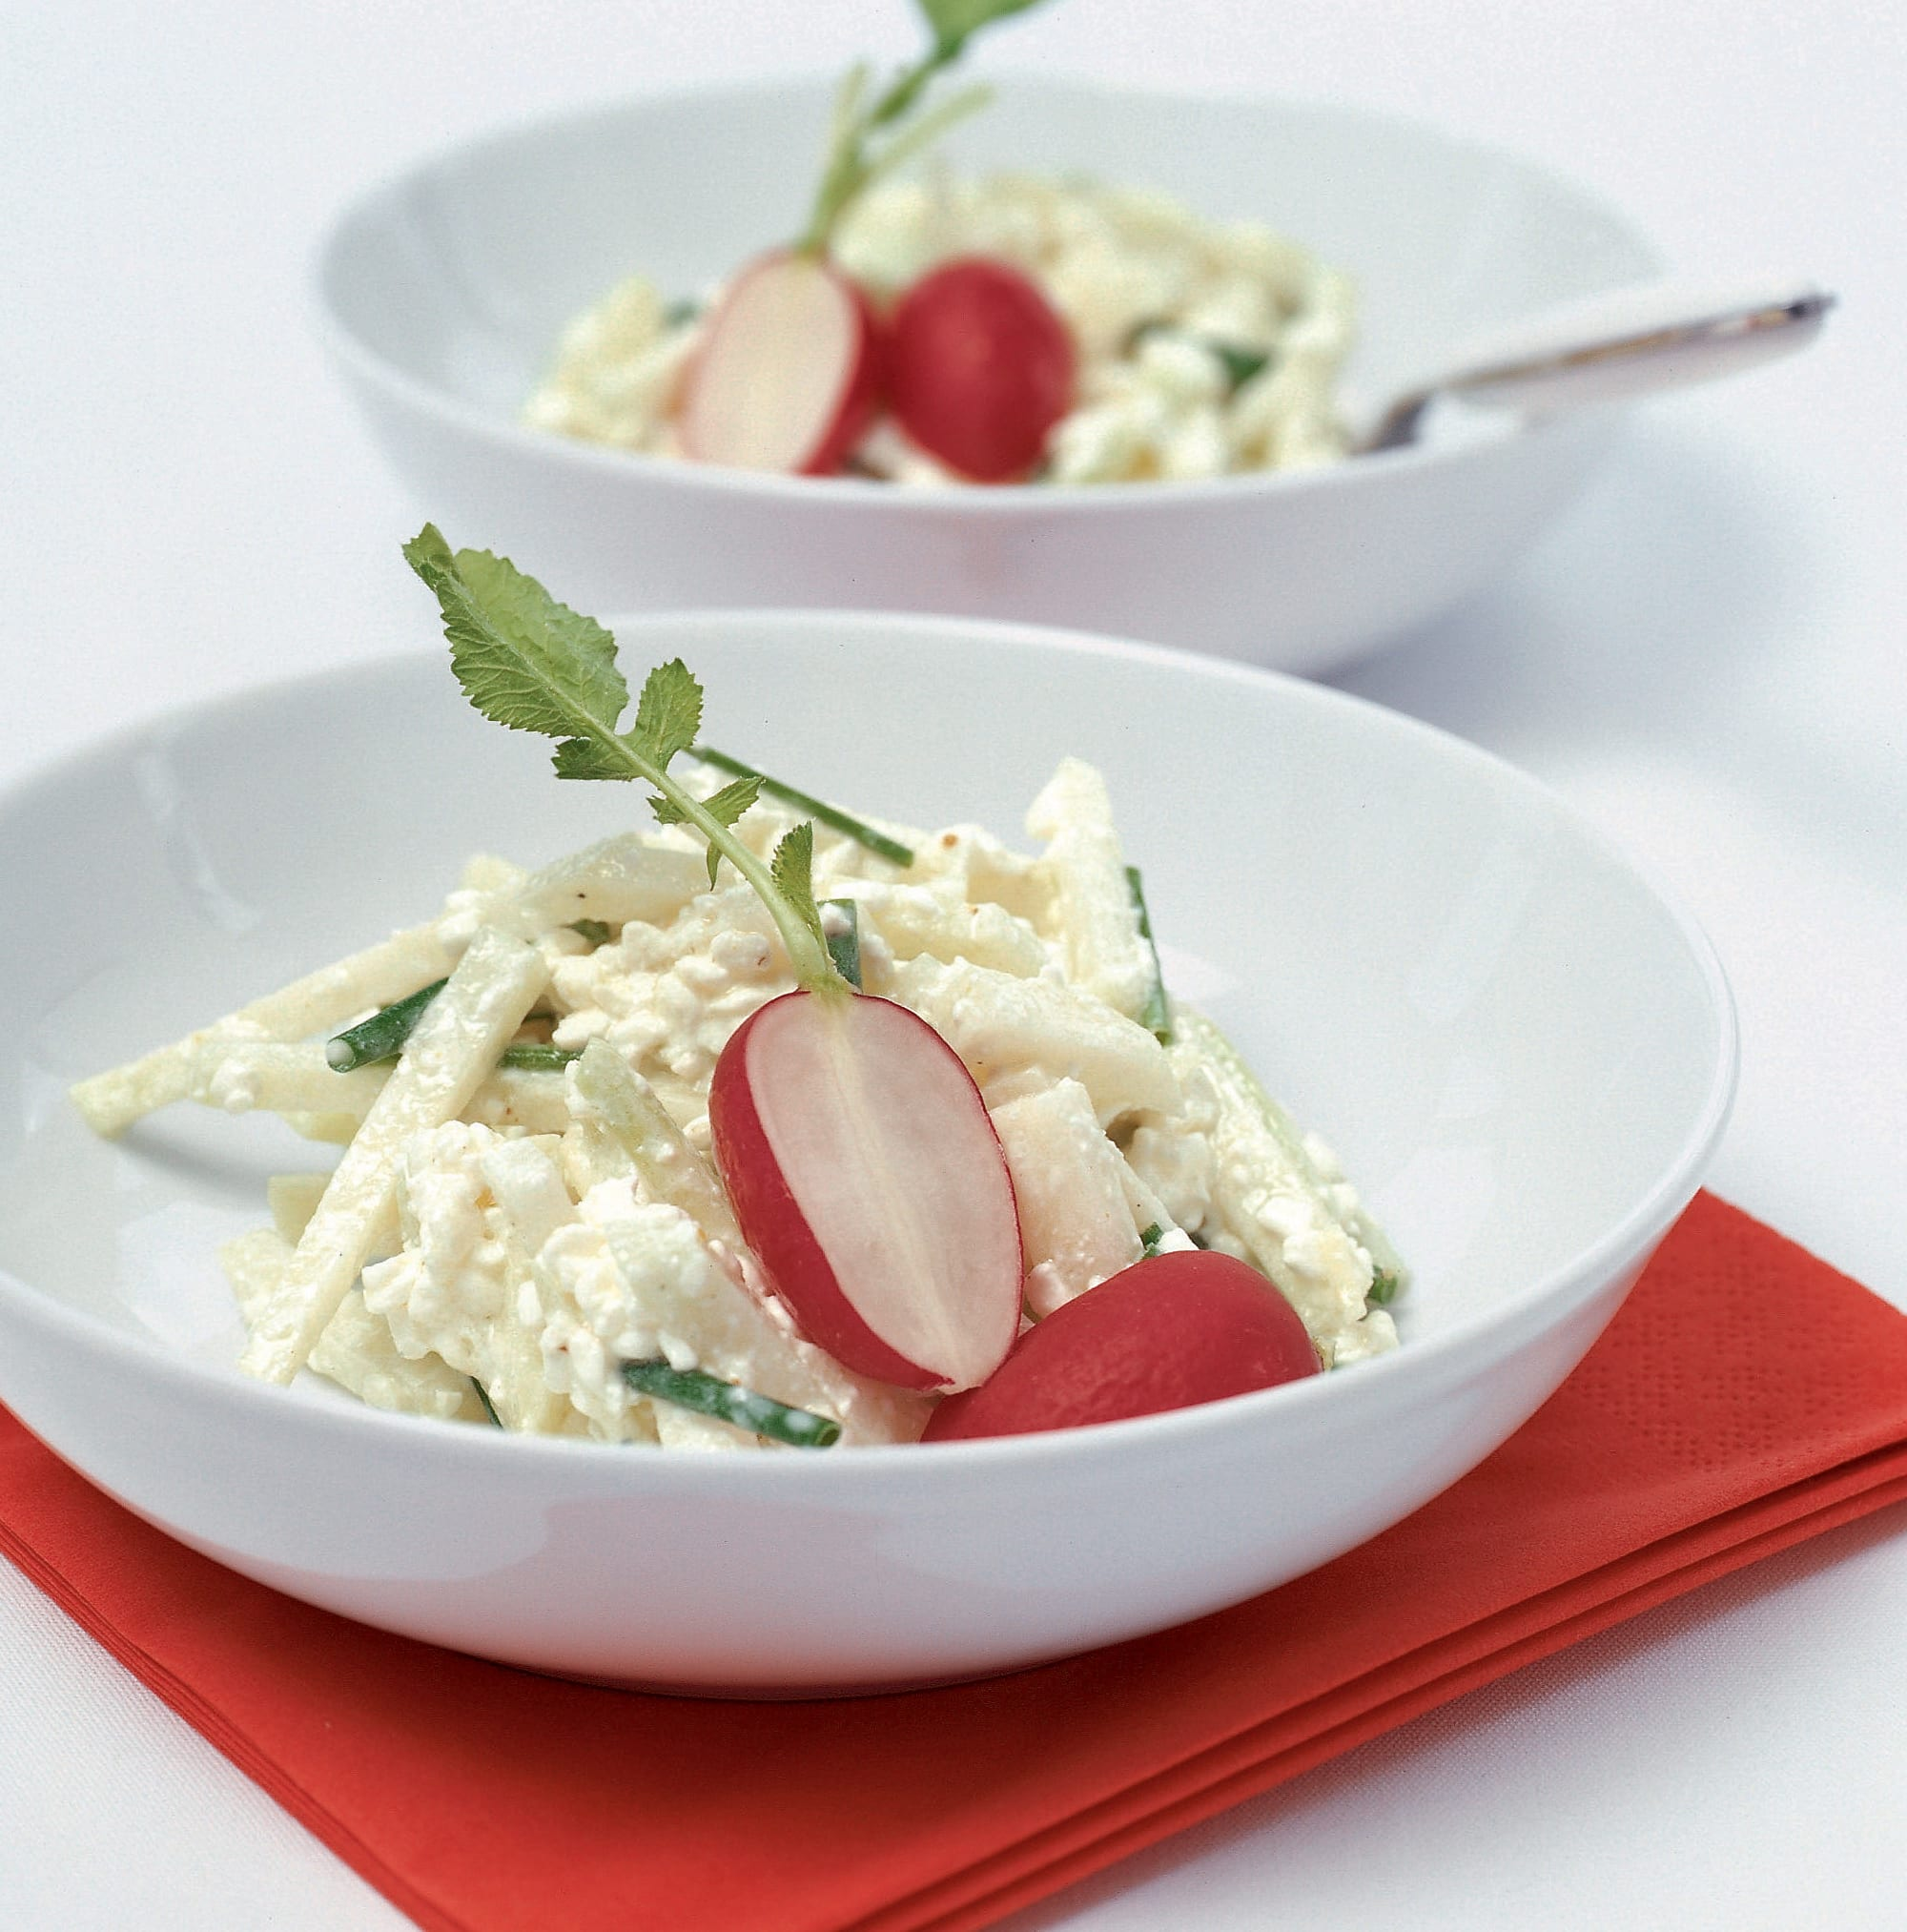 Salade de colraves et sauce au cottage cheese